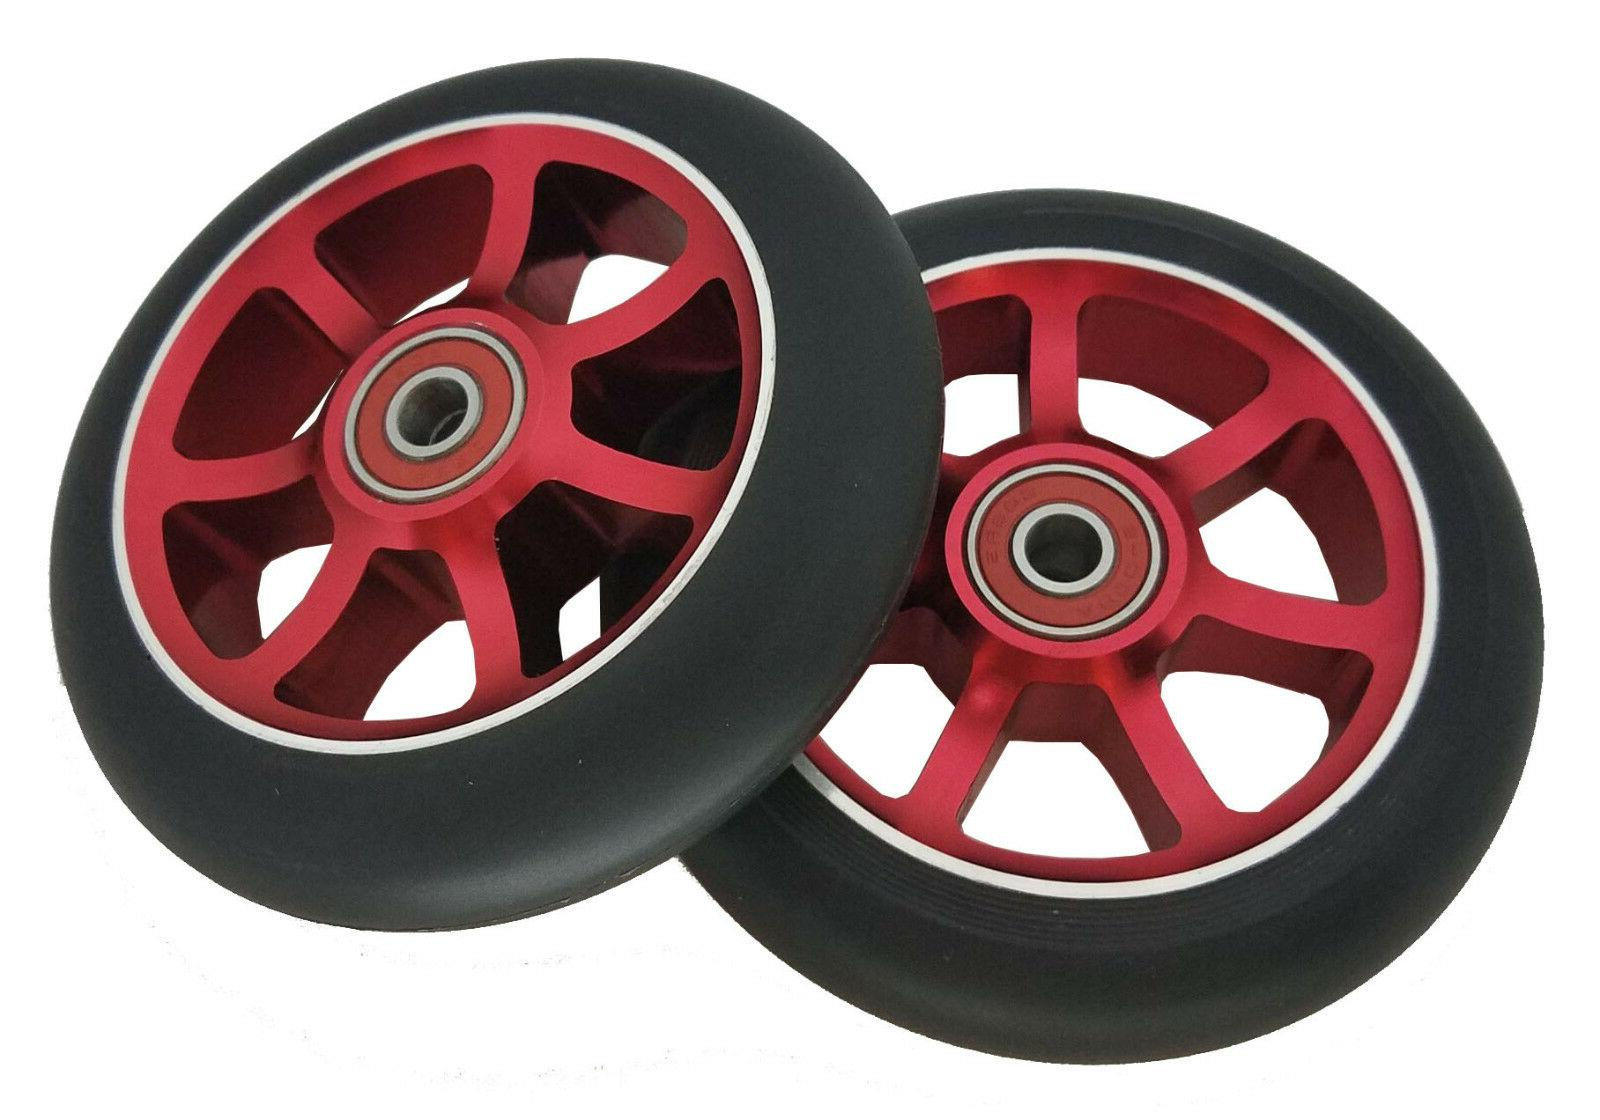 Revolution 7 Spoke Aluminum Pro Wheels | Pair